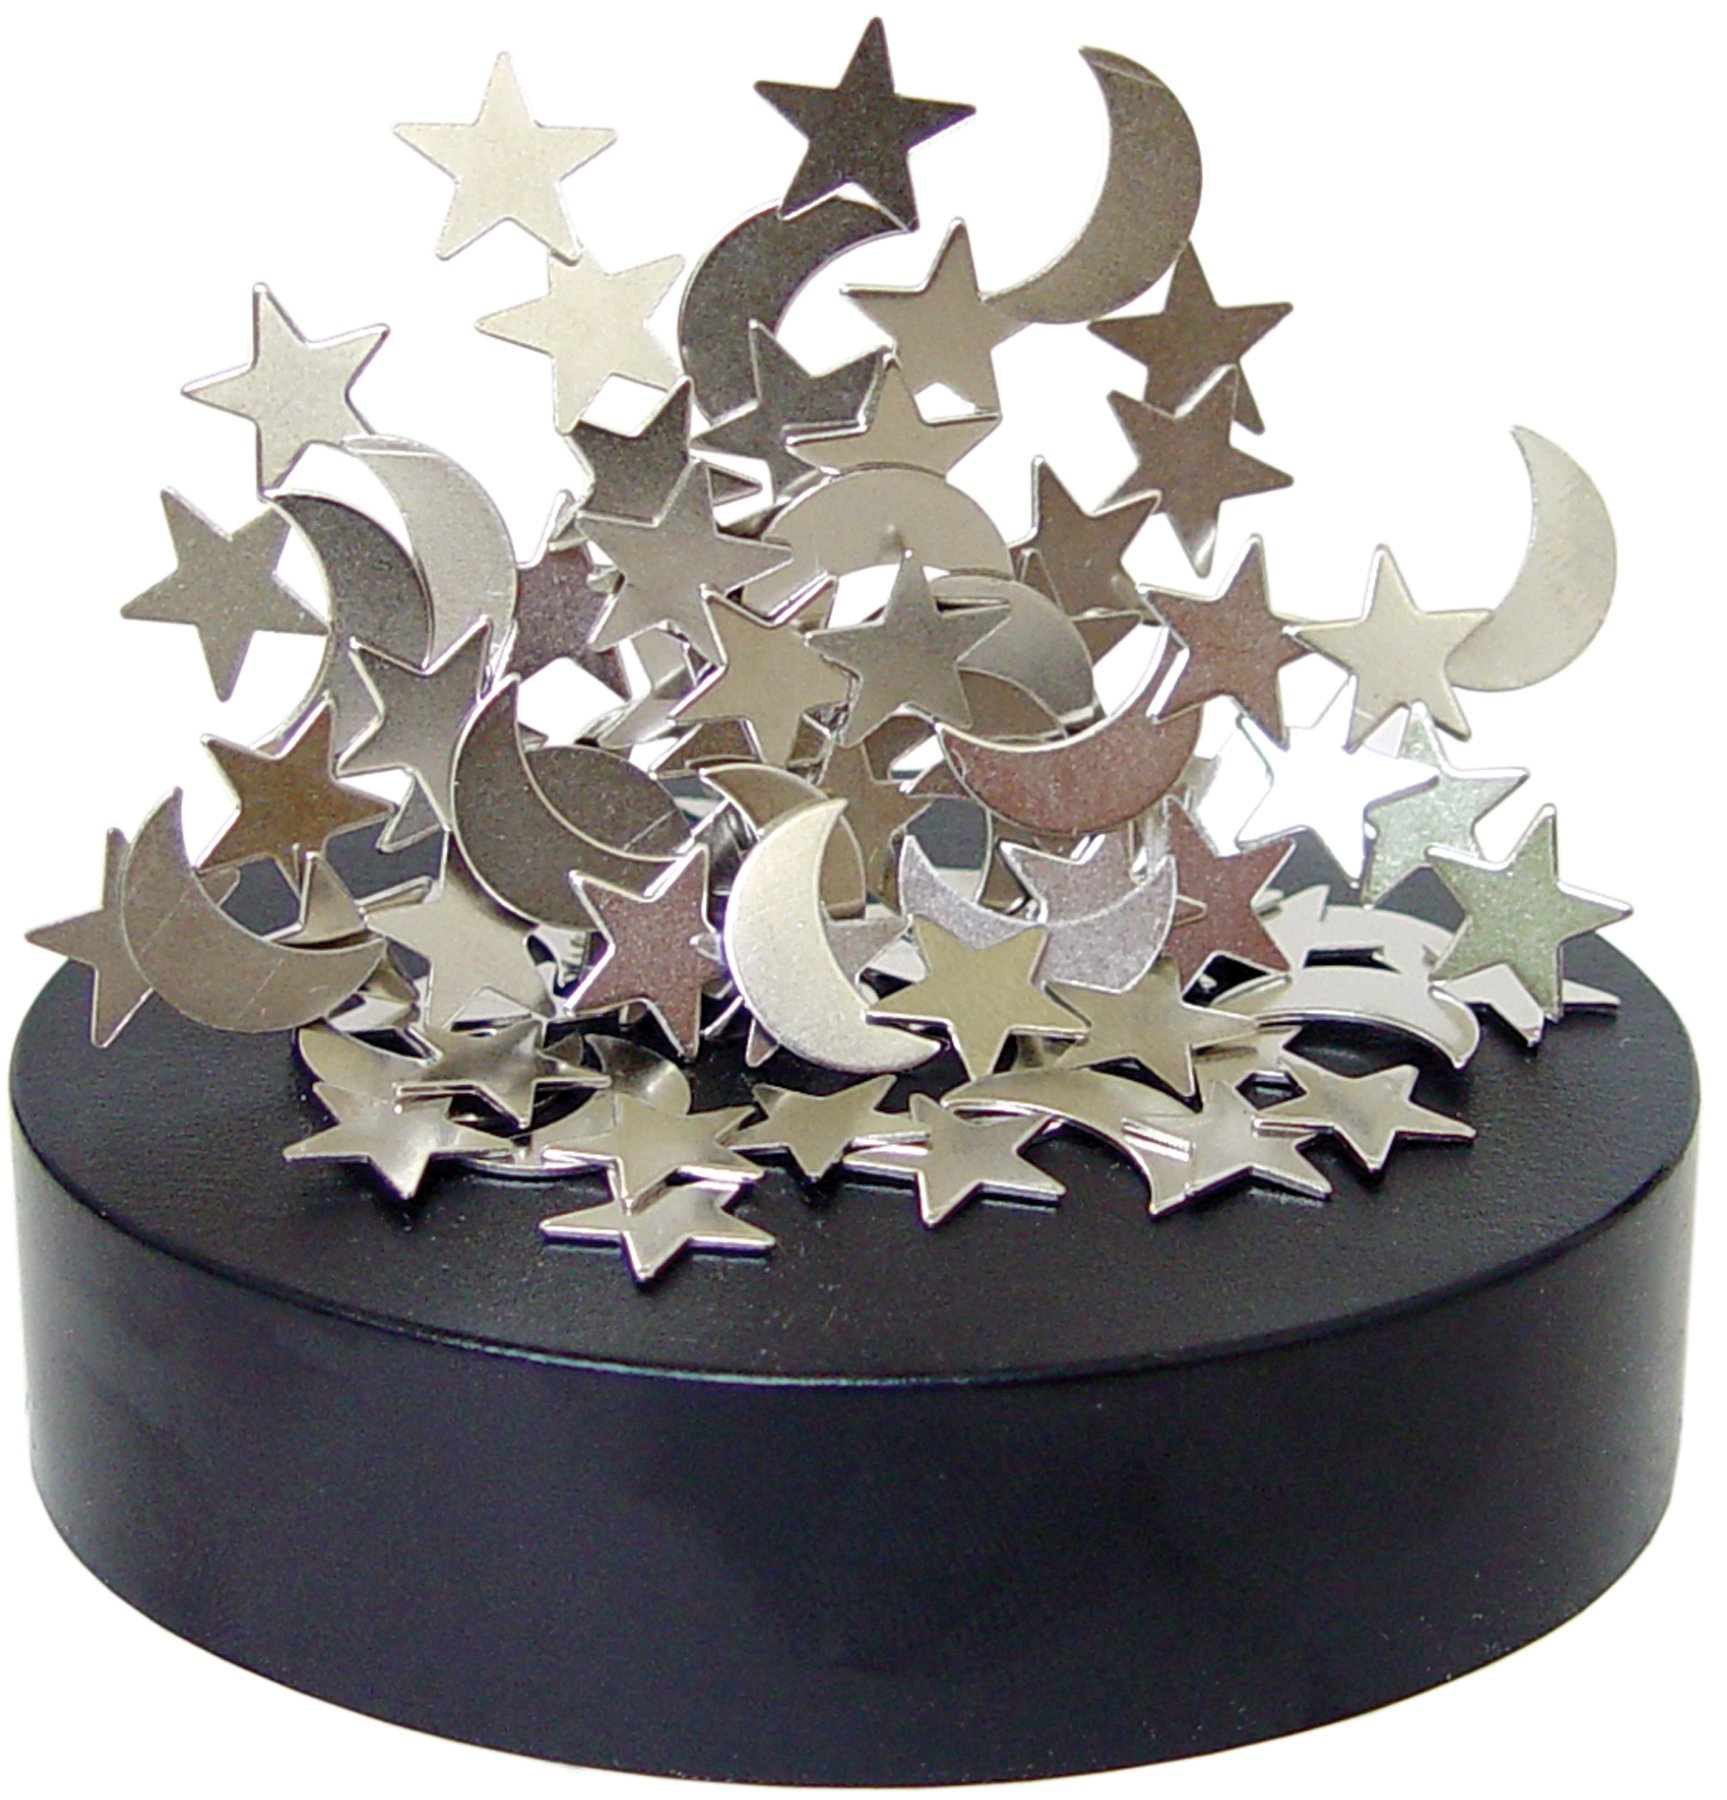 Magnetic Star And Moon Sculpture 2